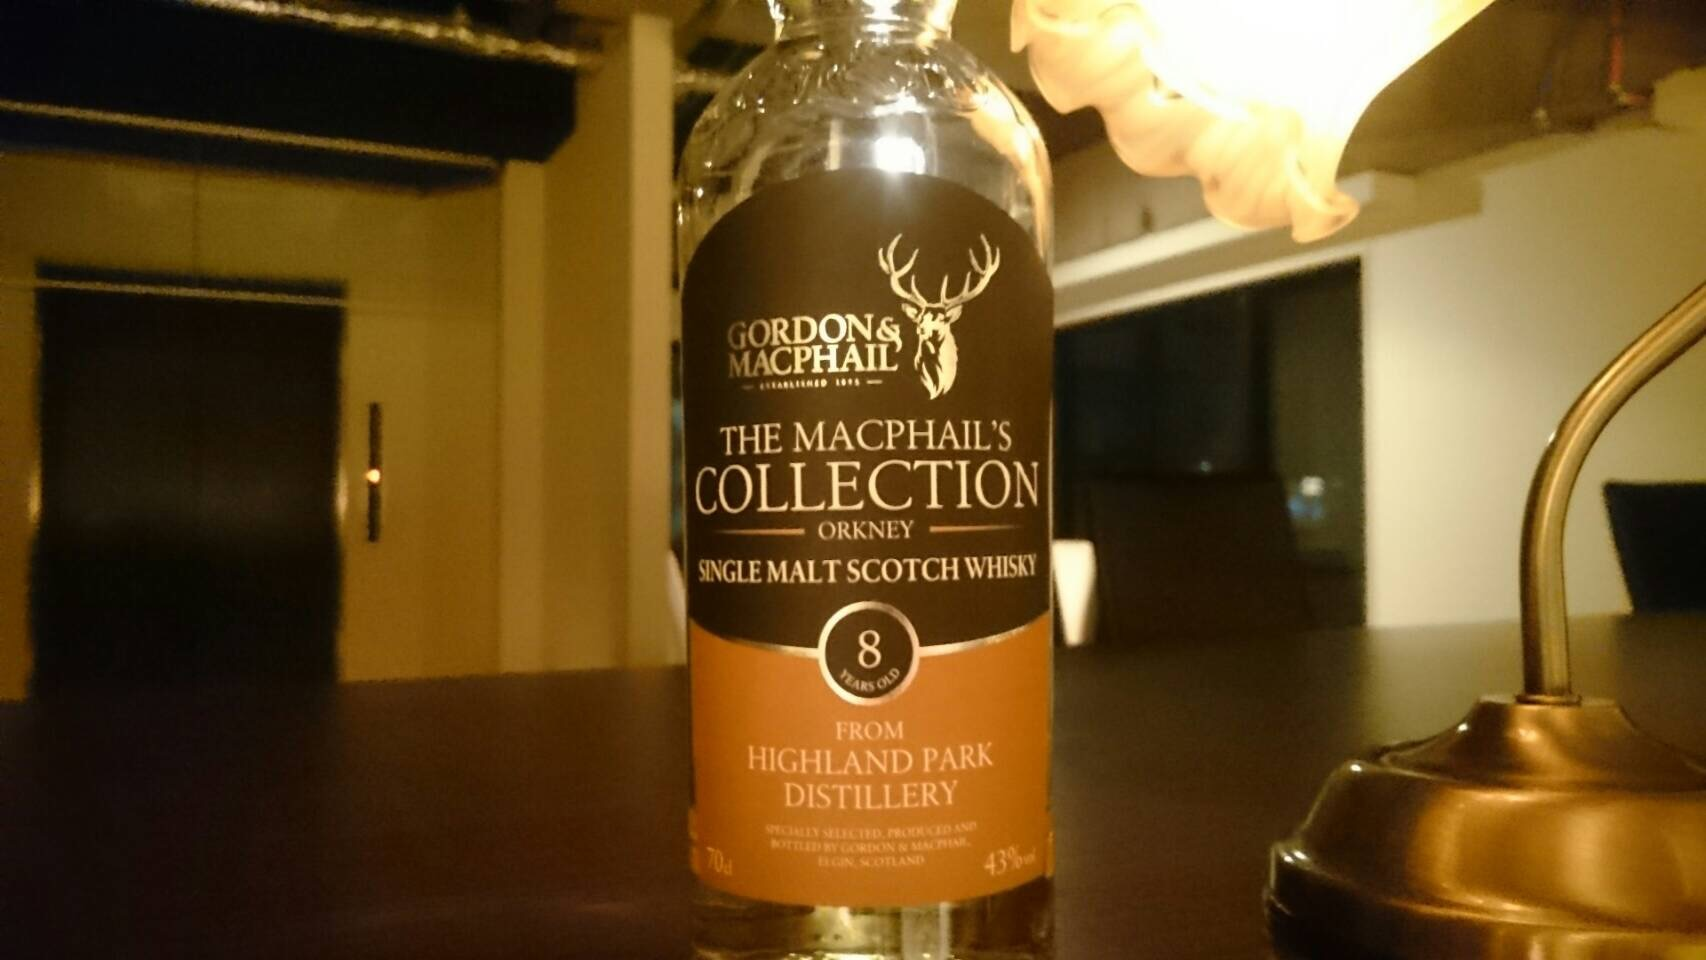 ウイスキー:THE MACPHAIL'S COLLECTION